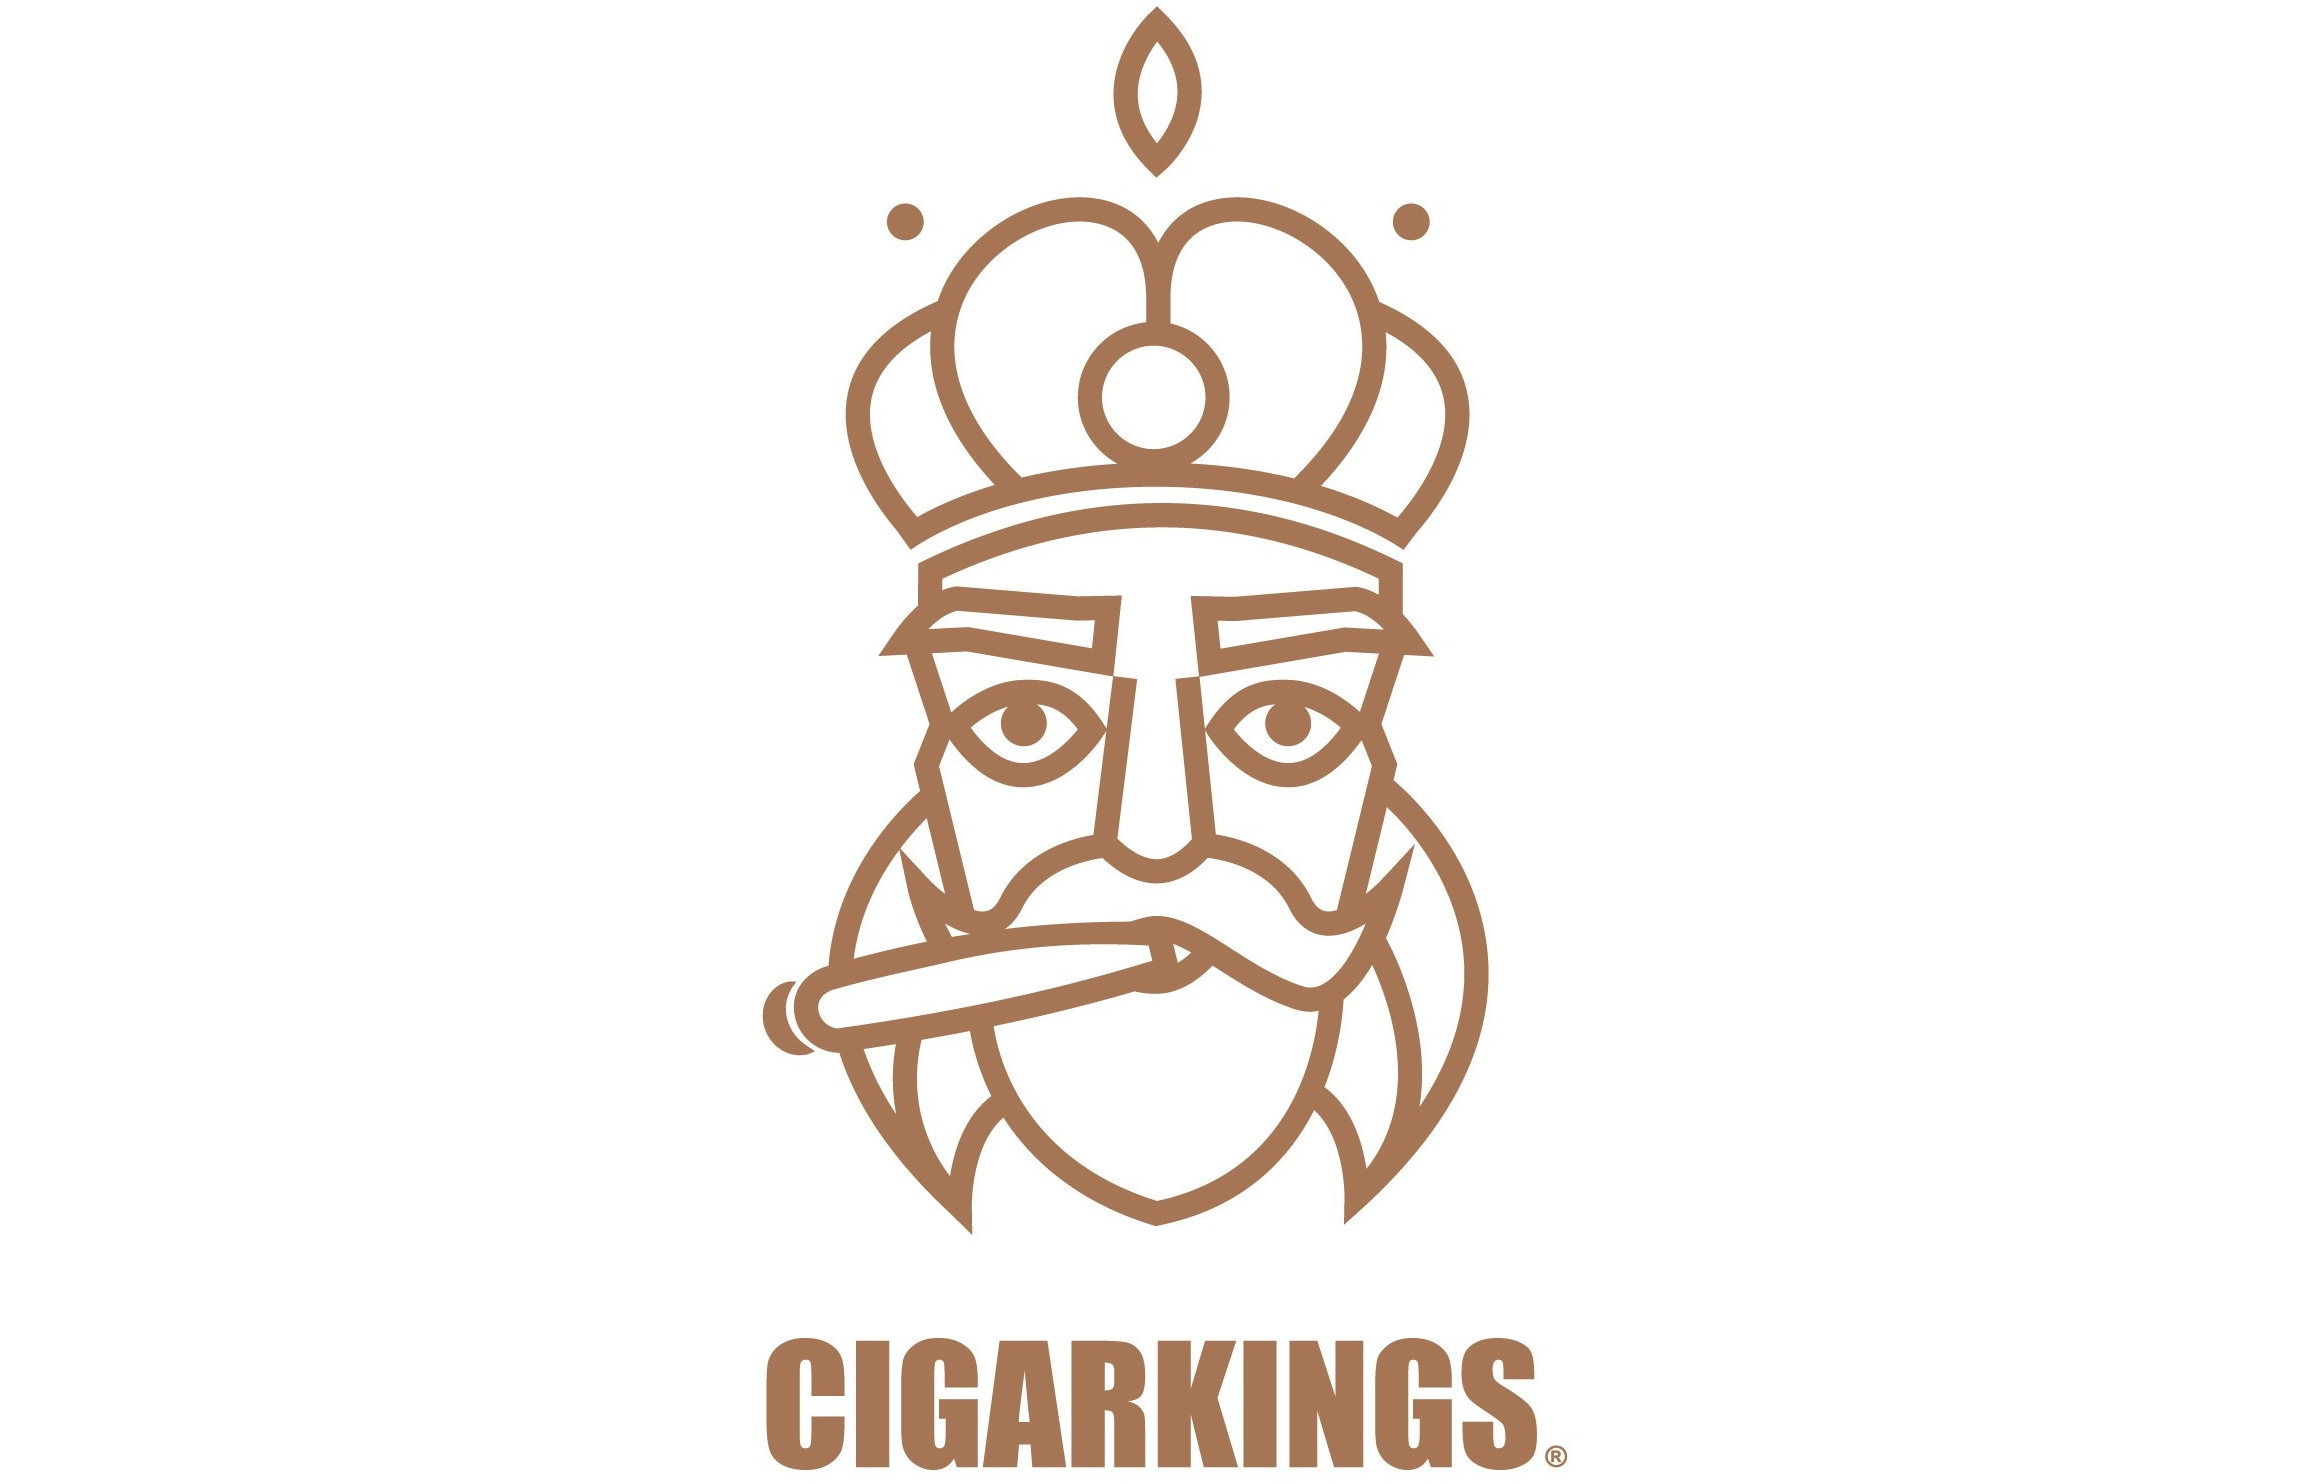 CigarKings GmbH